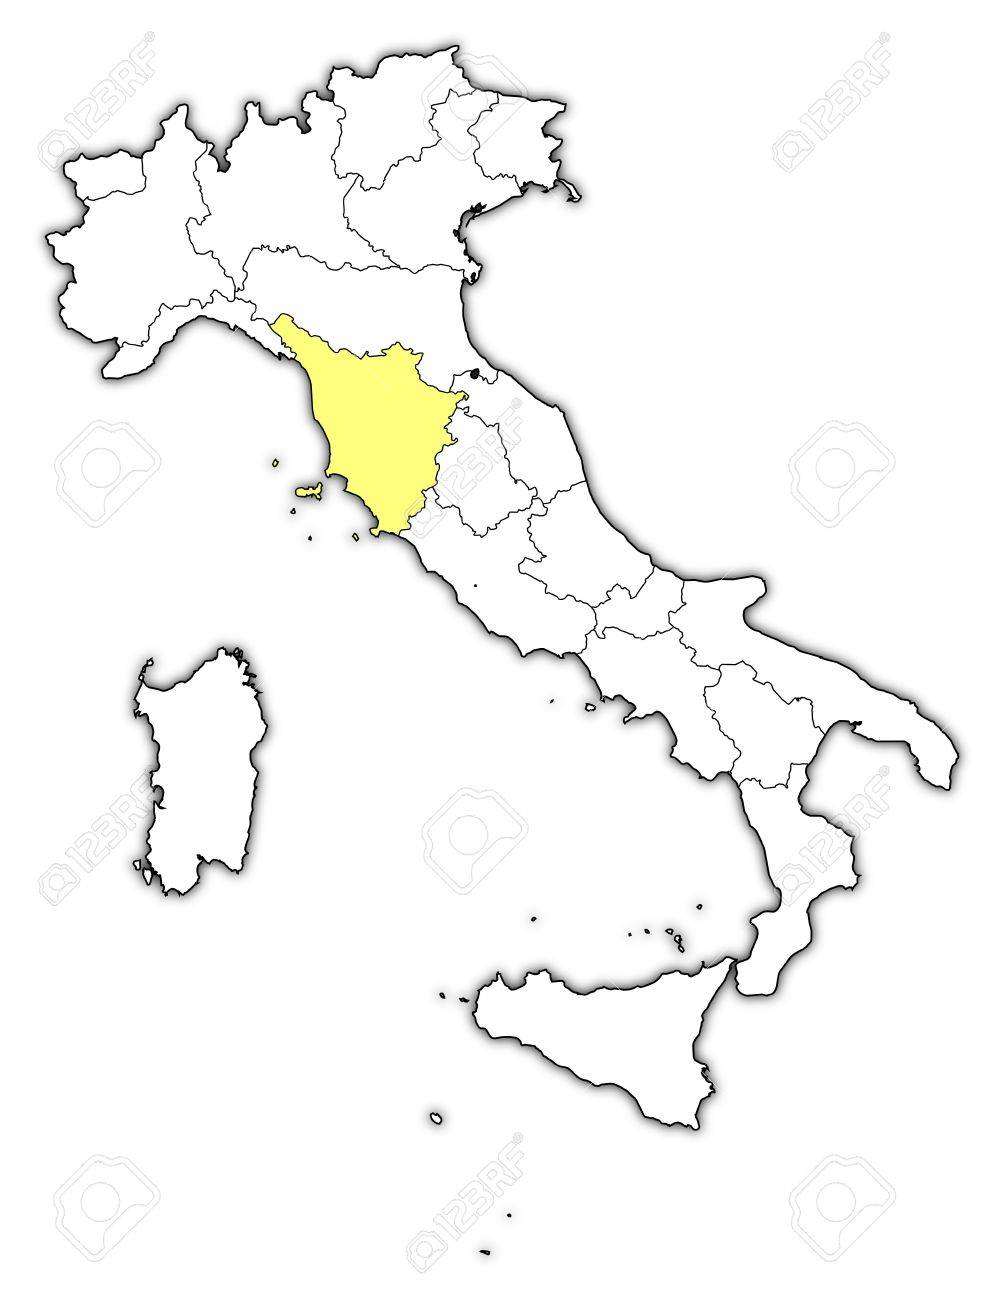 Political Map Of Italy With The Several Regions Where Tuscany - Italy map regions